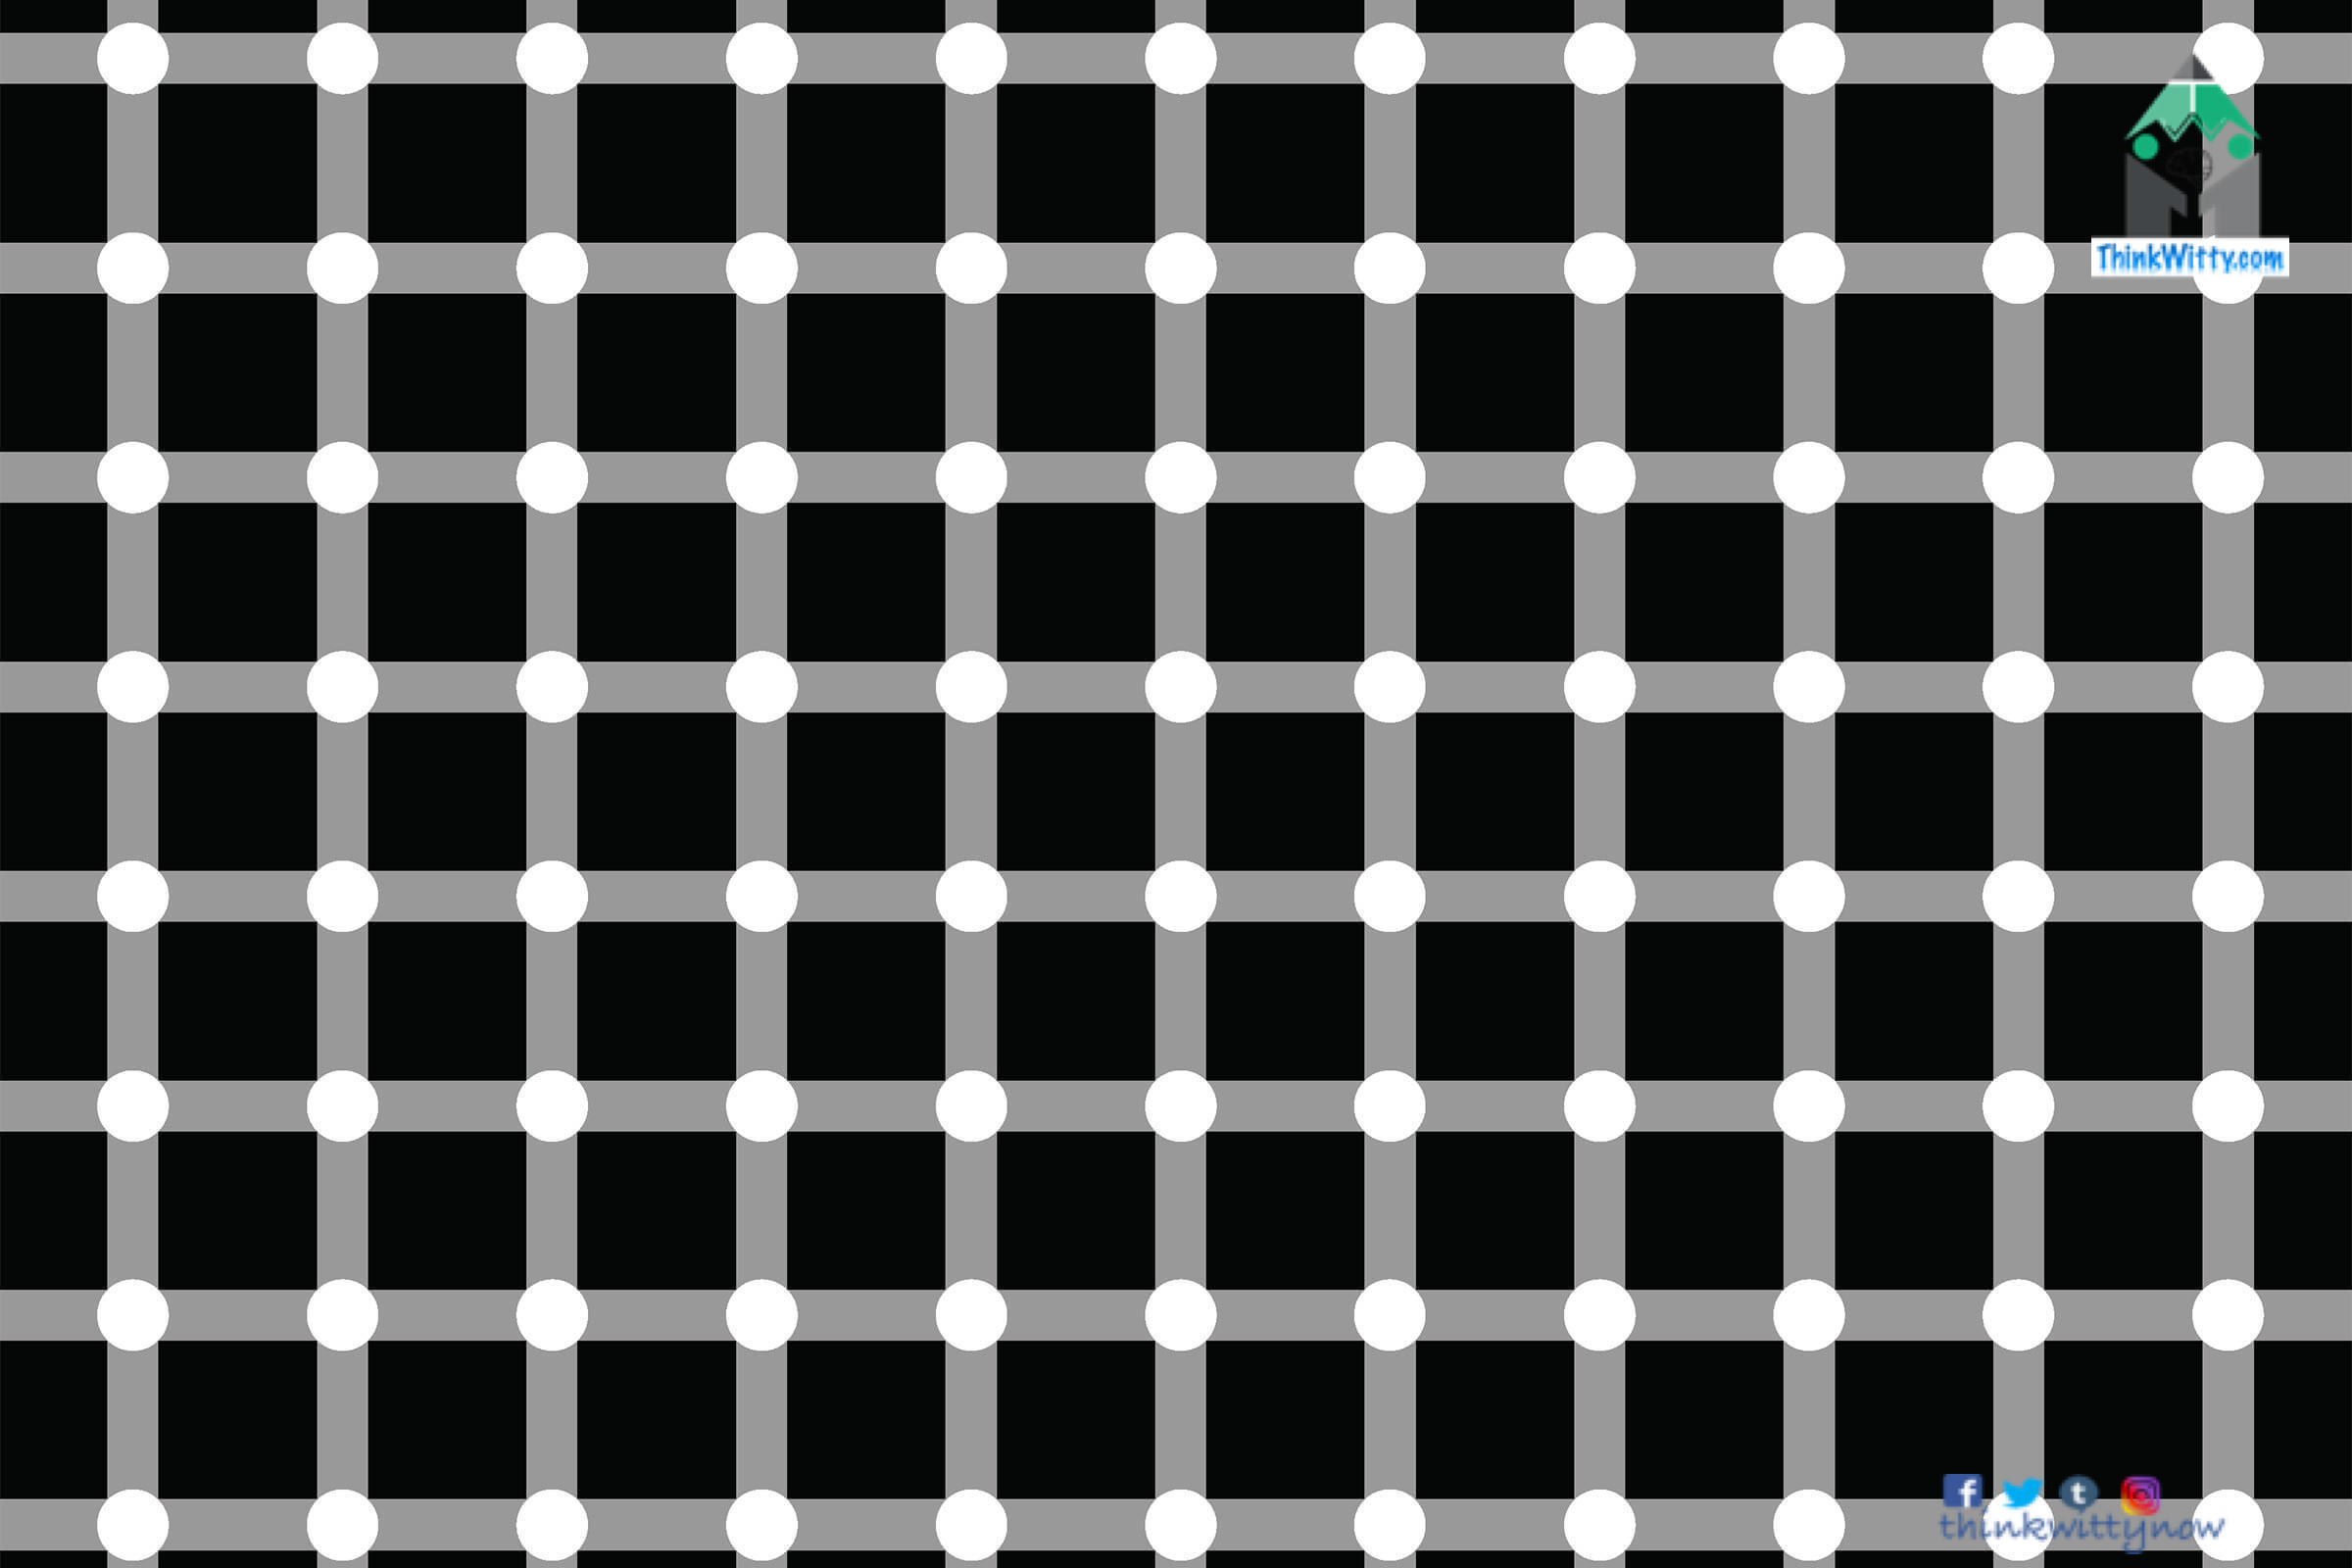 Optical Illusion thinkwitty.com - Scintillating Grid Illusion